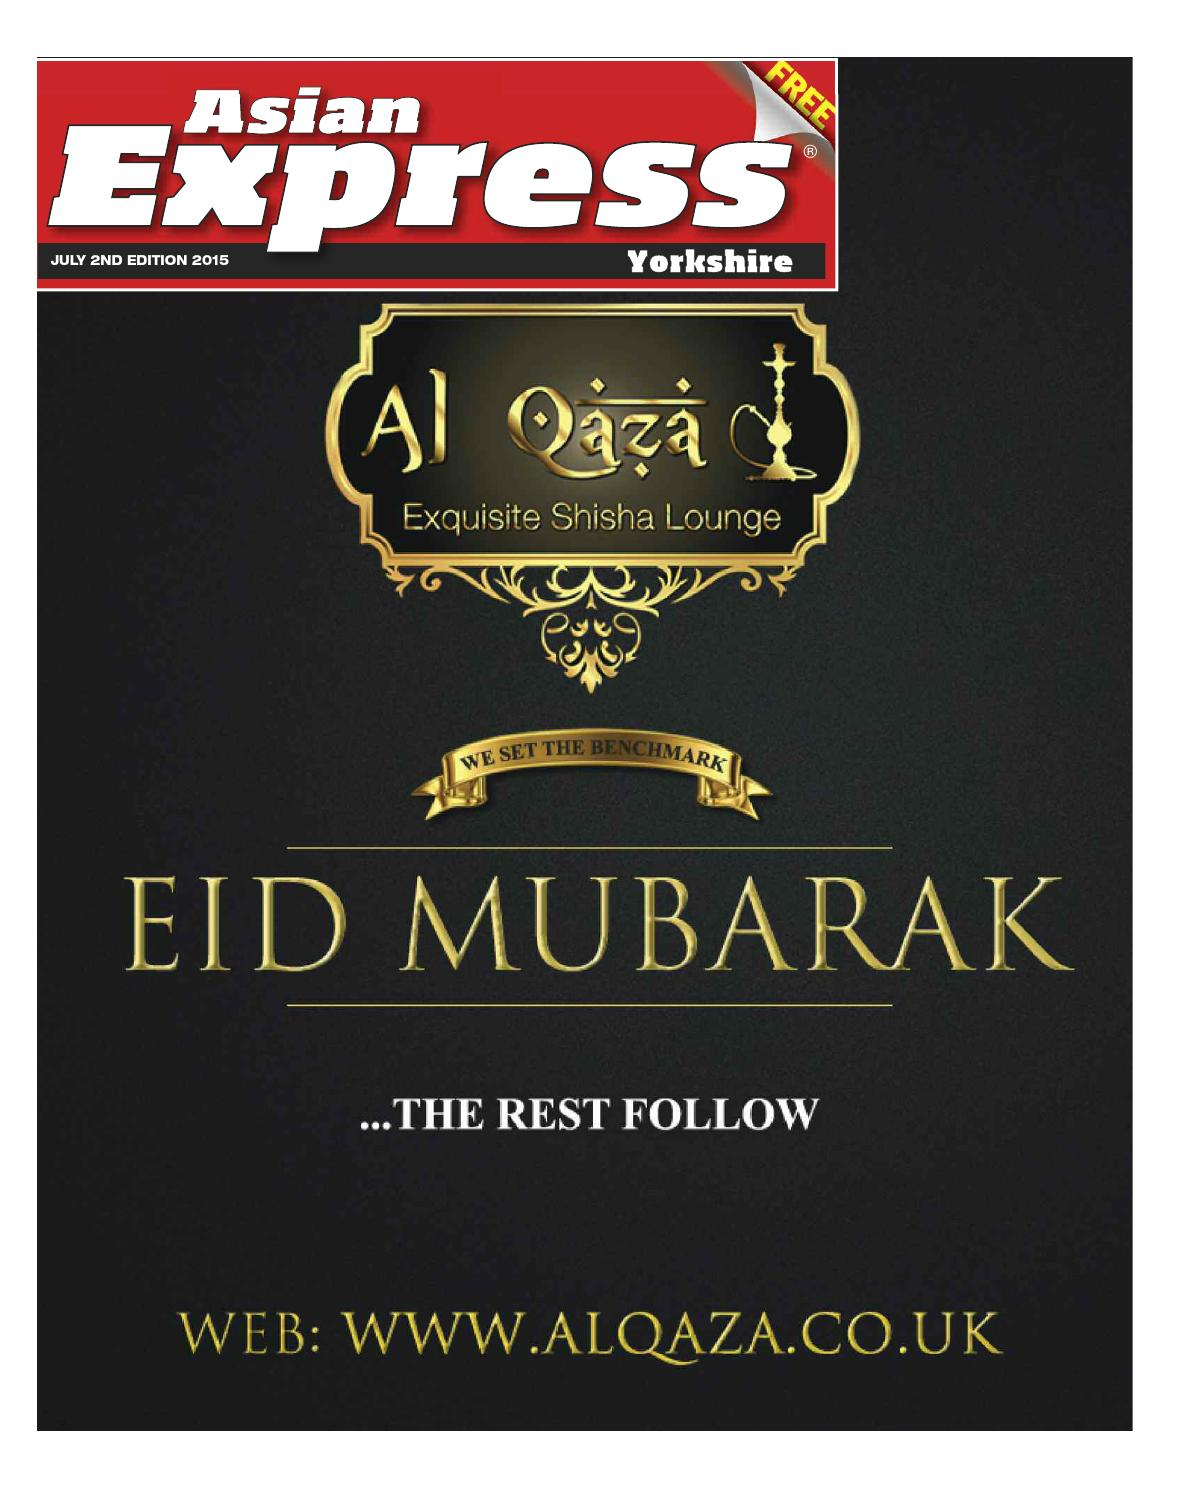 Asian express yorkshire july 2nd edition 2015 by asian expres issuu solutioingenieria Gallery